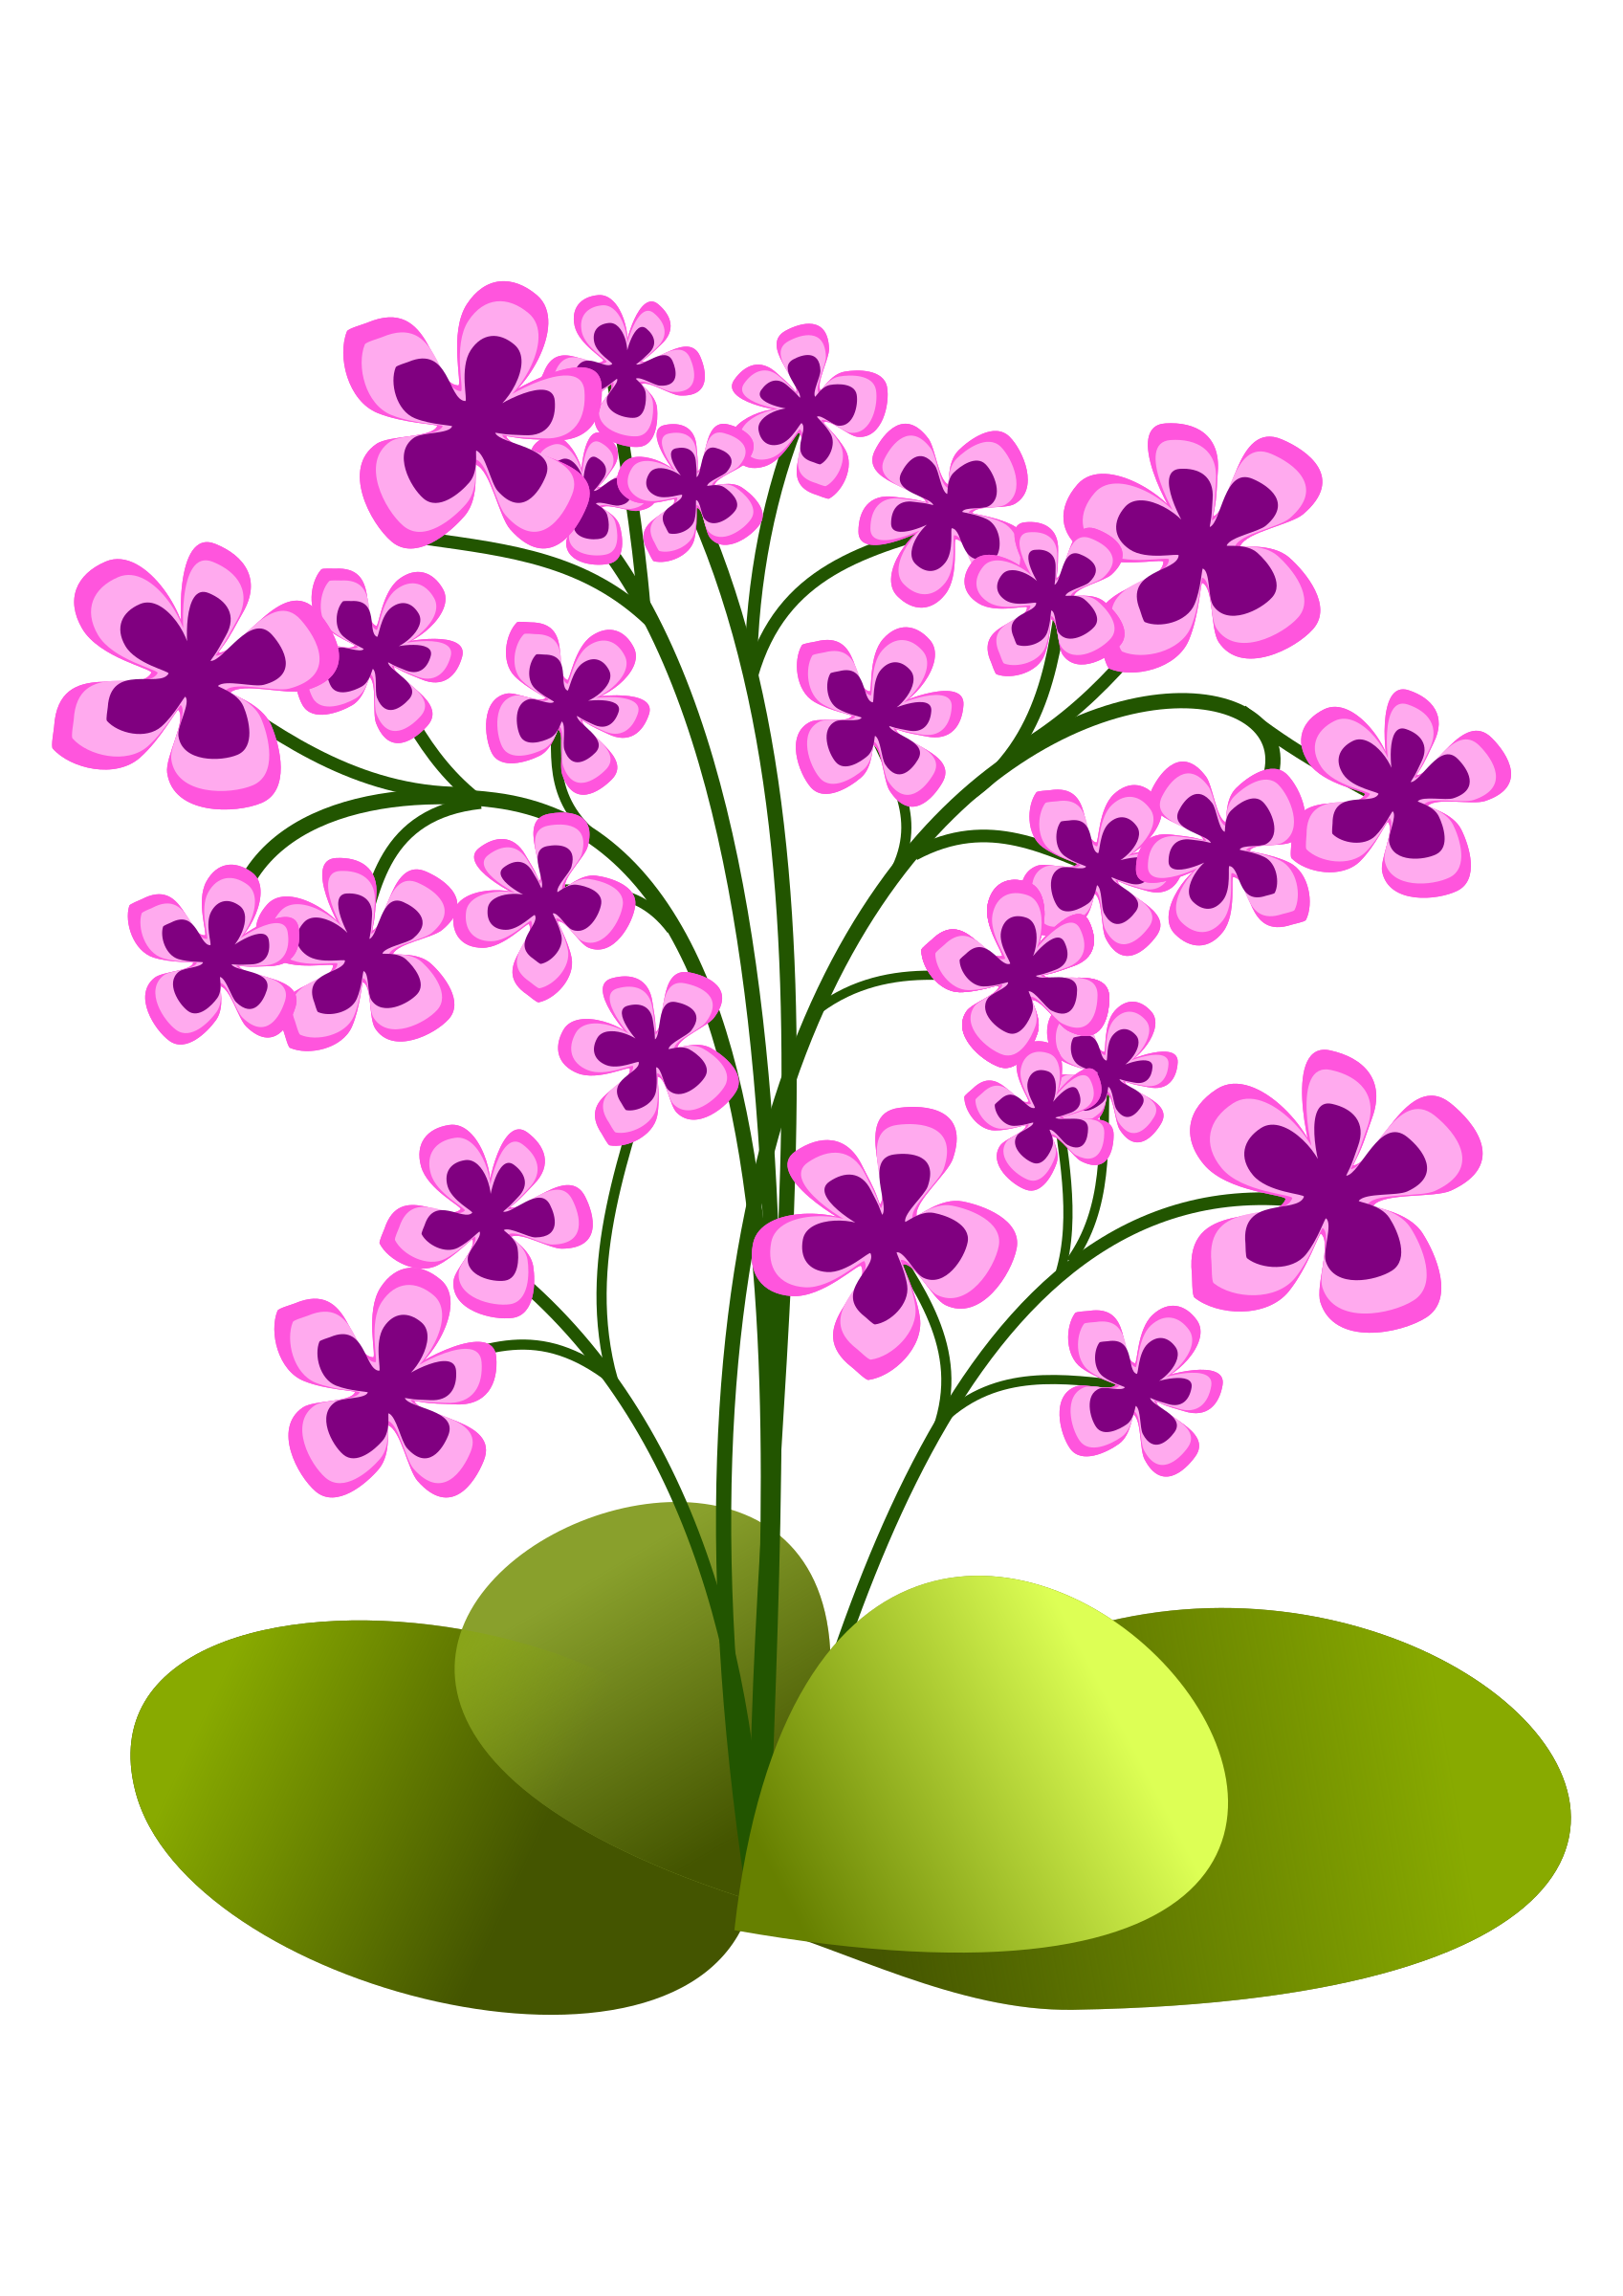 Flowers clipart garden. Small big image png